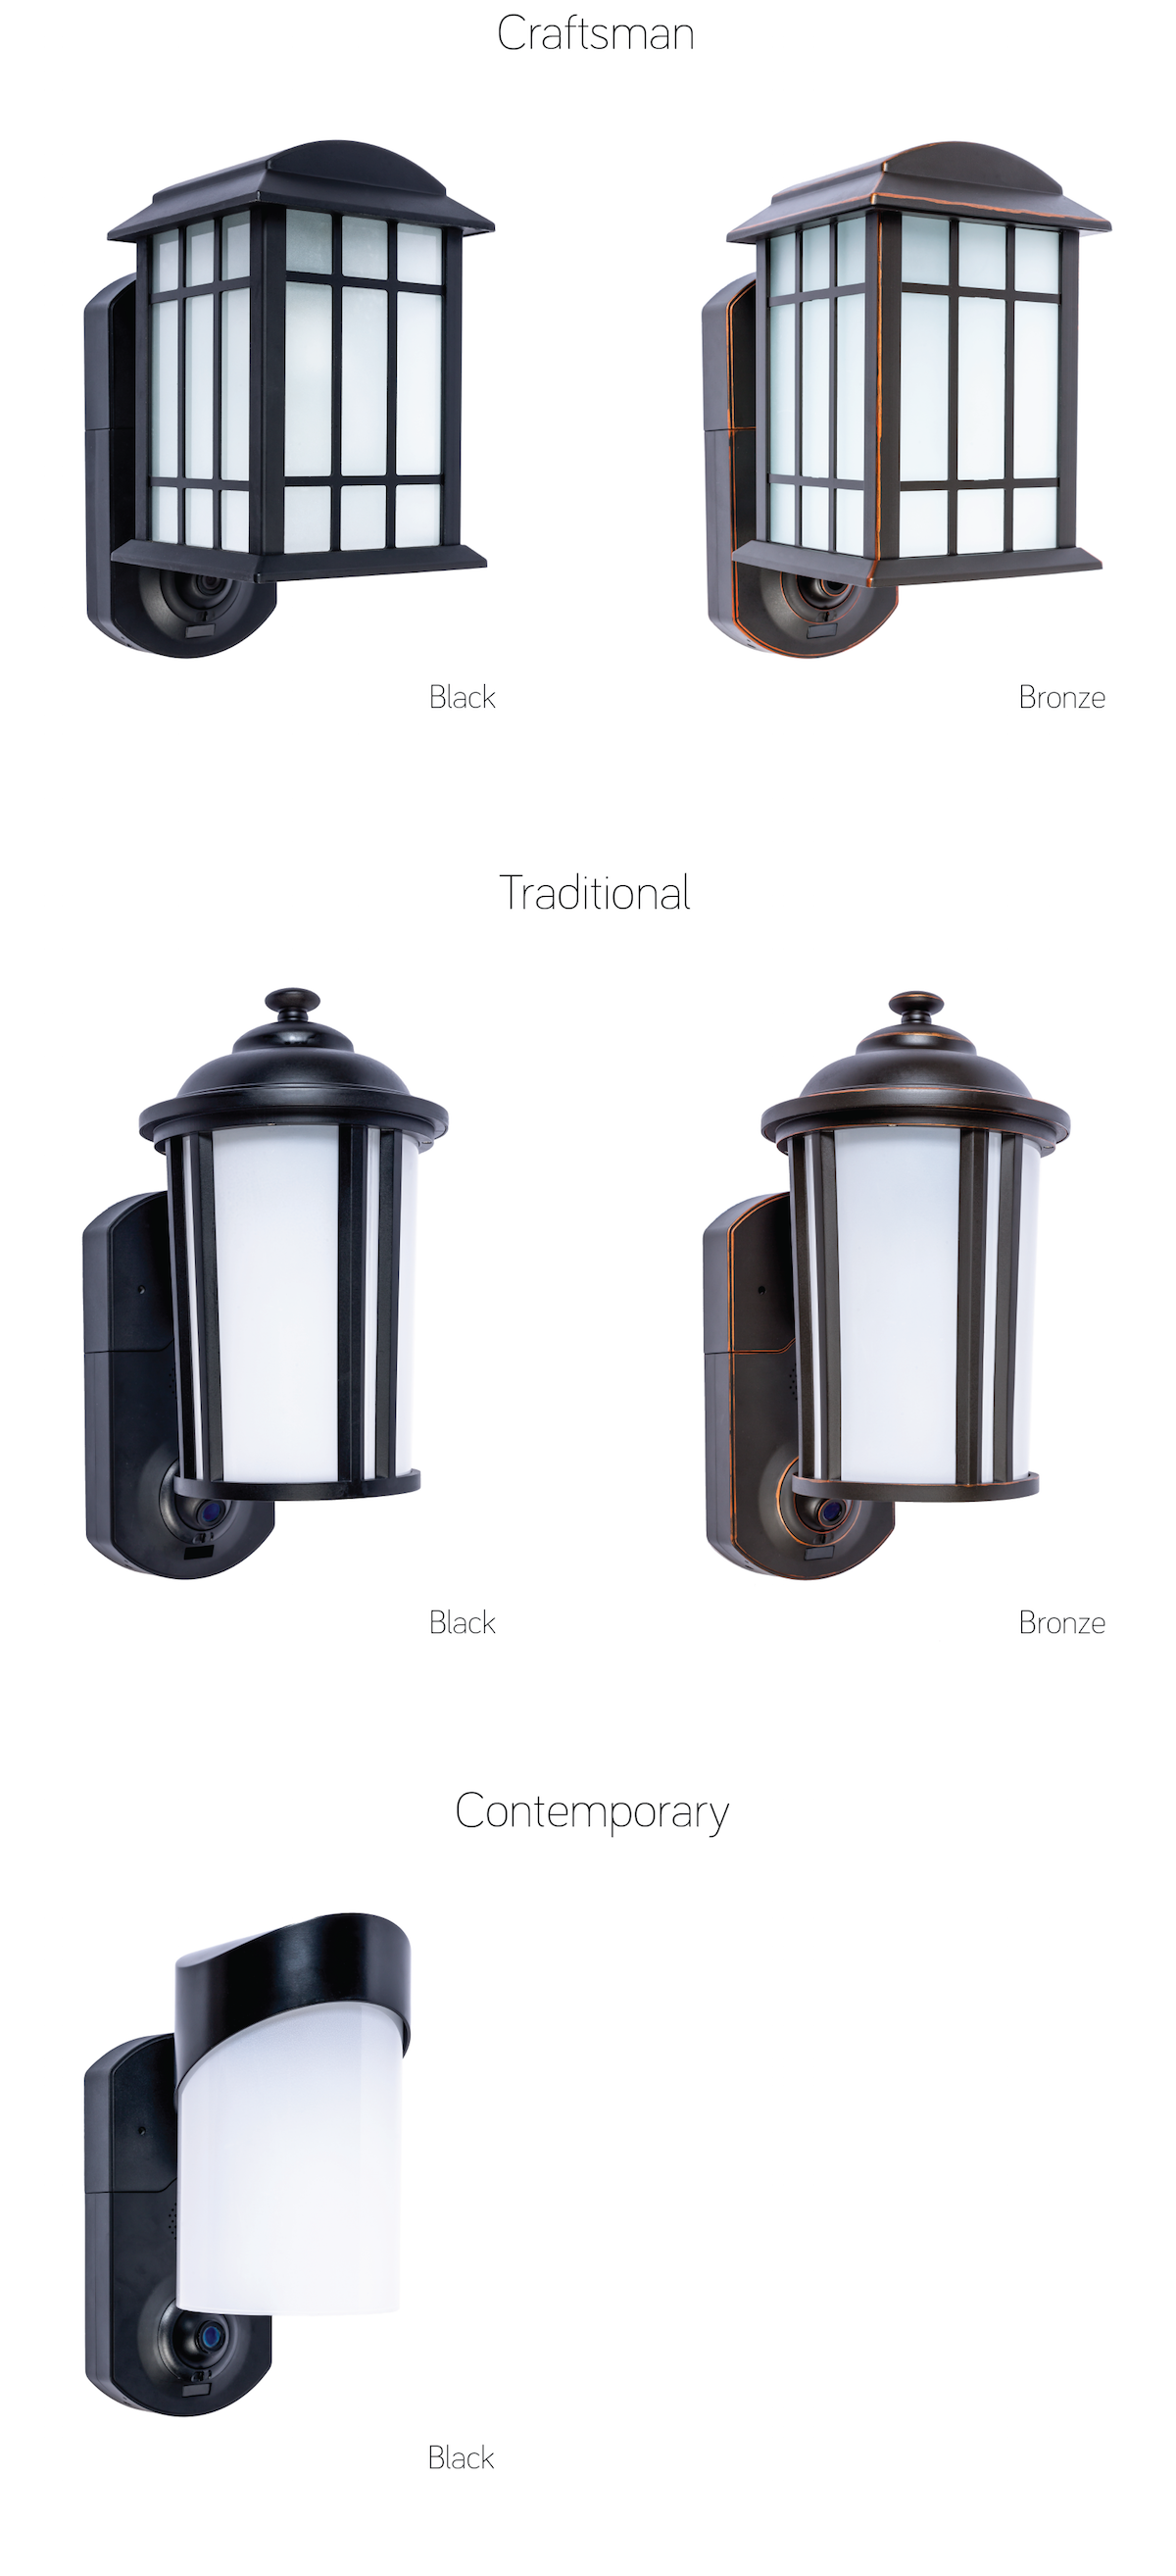 Kuna: Security webcam built into porch light with an integrated app ...